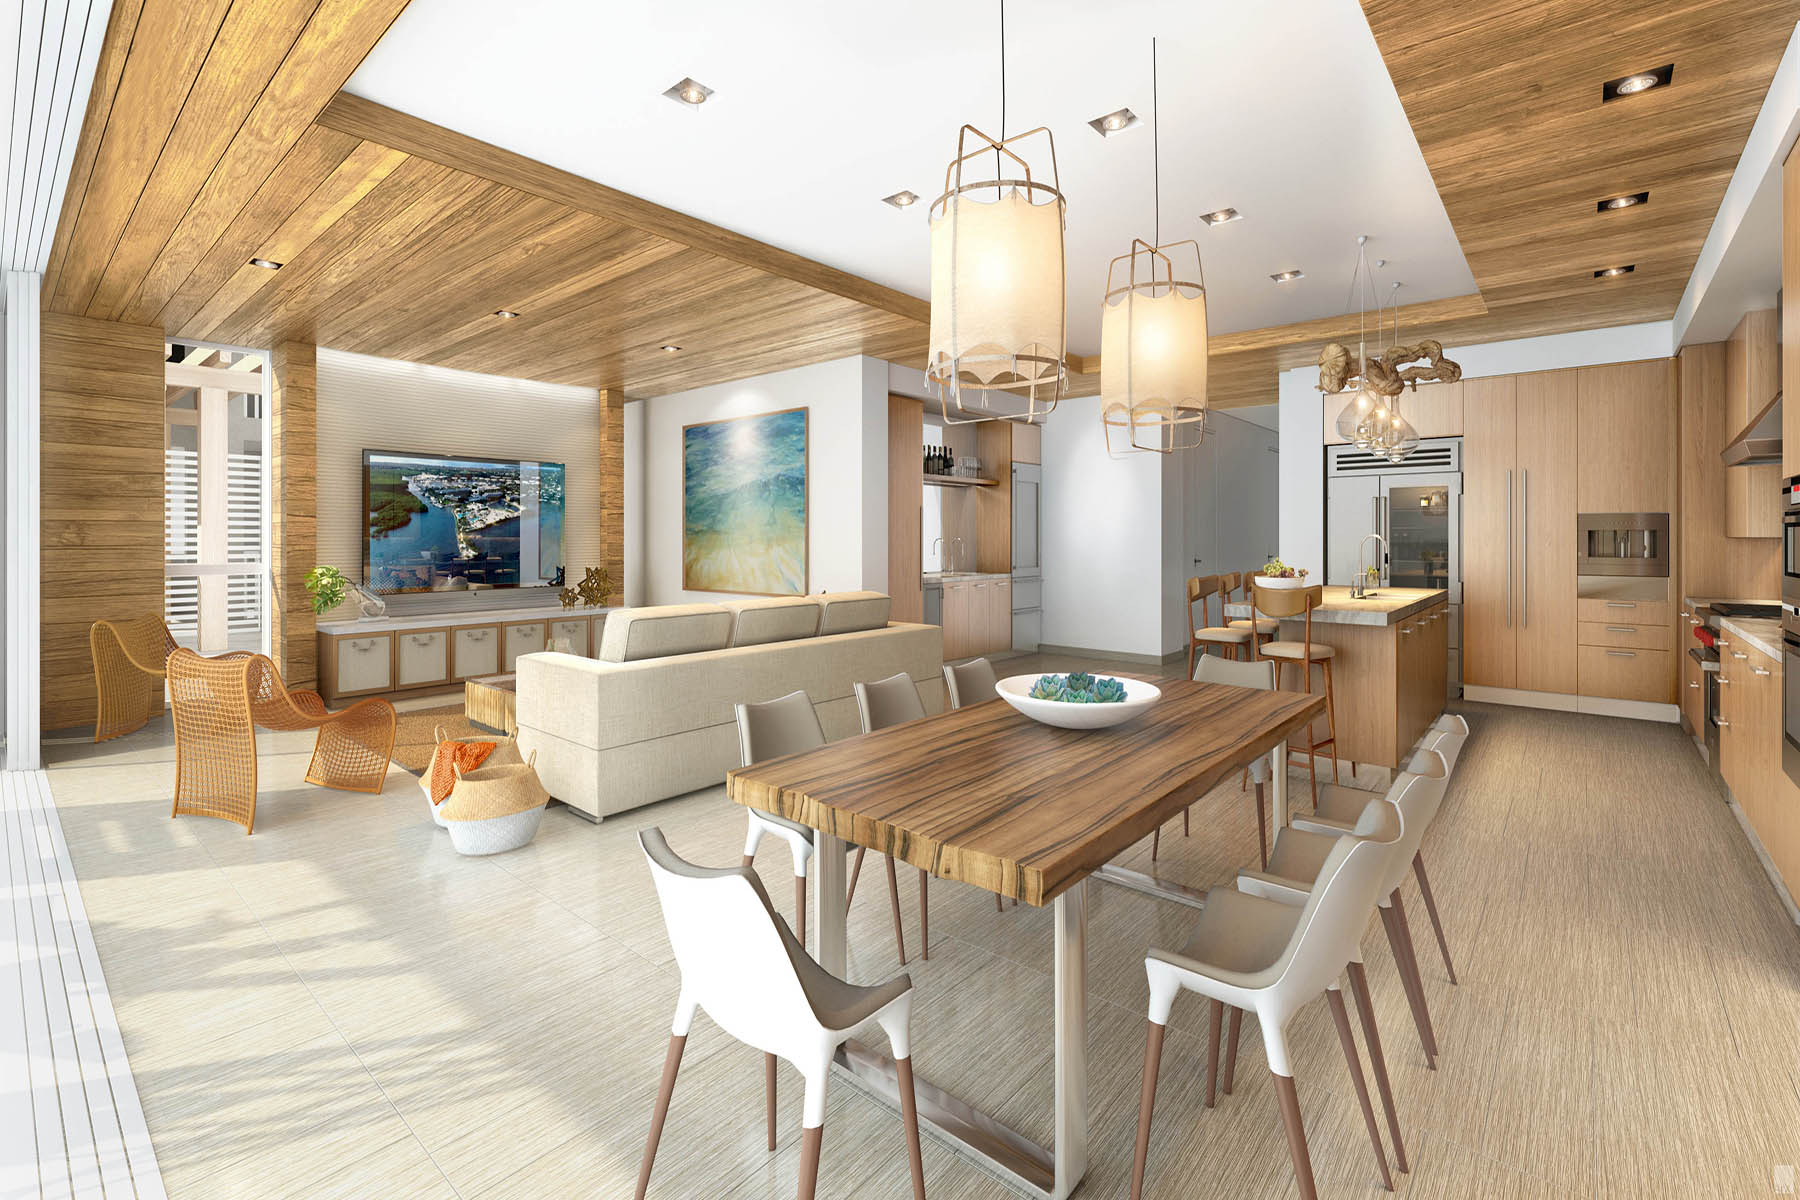 Kat Mülkiyeti için Satış at New Construction Condominium at Ocean Reef Club 121 Beach Road #104, Ocean Reef Community, Key Largo, Florida, 33037 Amerika Birleşik Devletleri